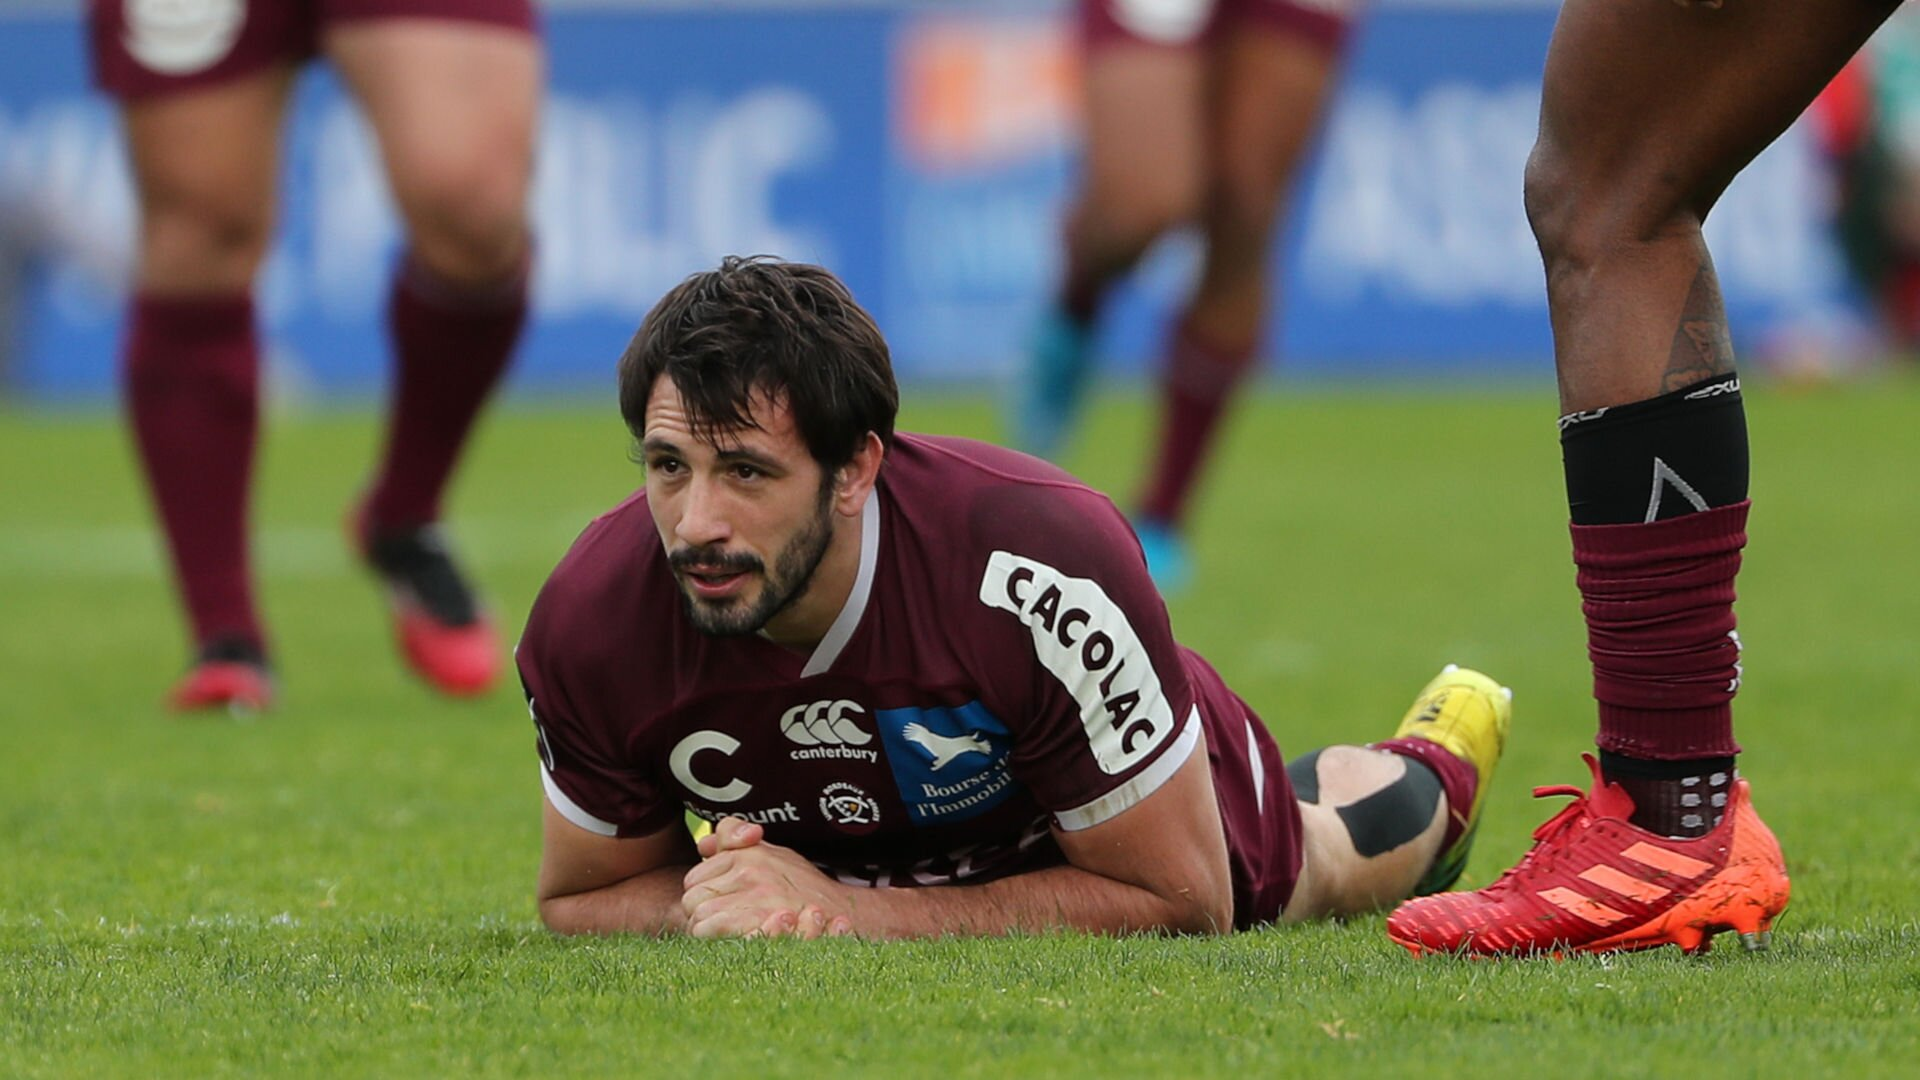 Top 14 2020/21 club-by-club season preview: Bordeaux